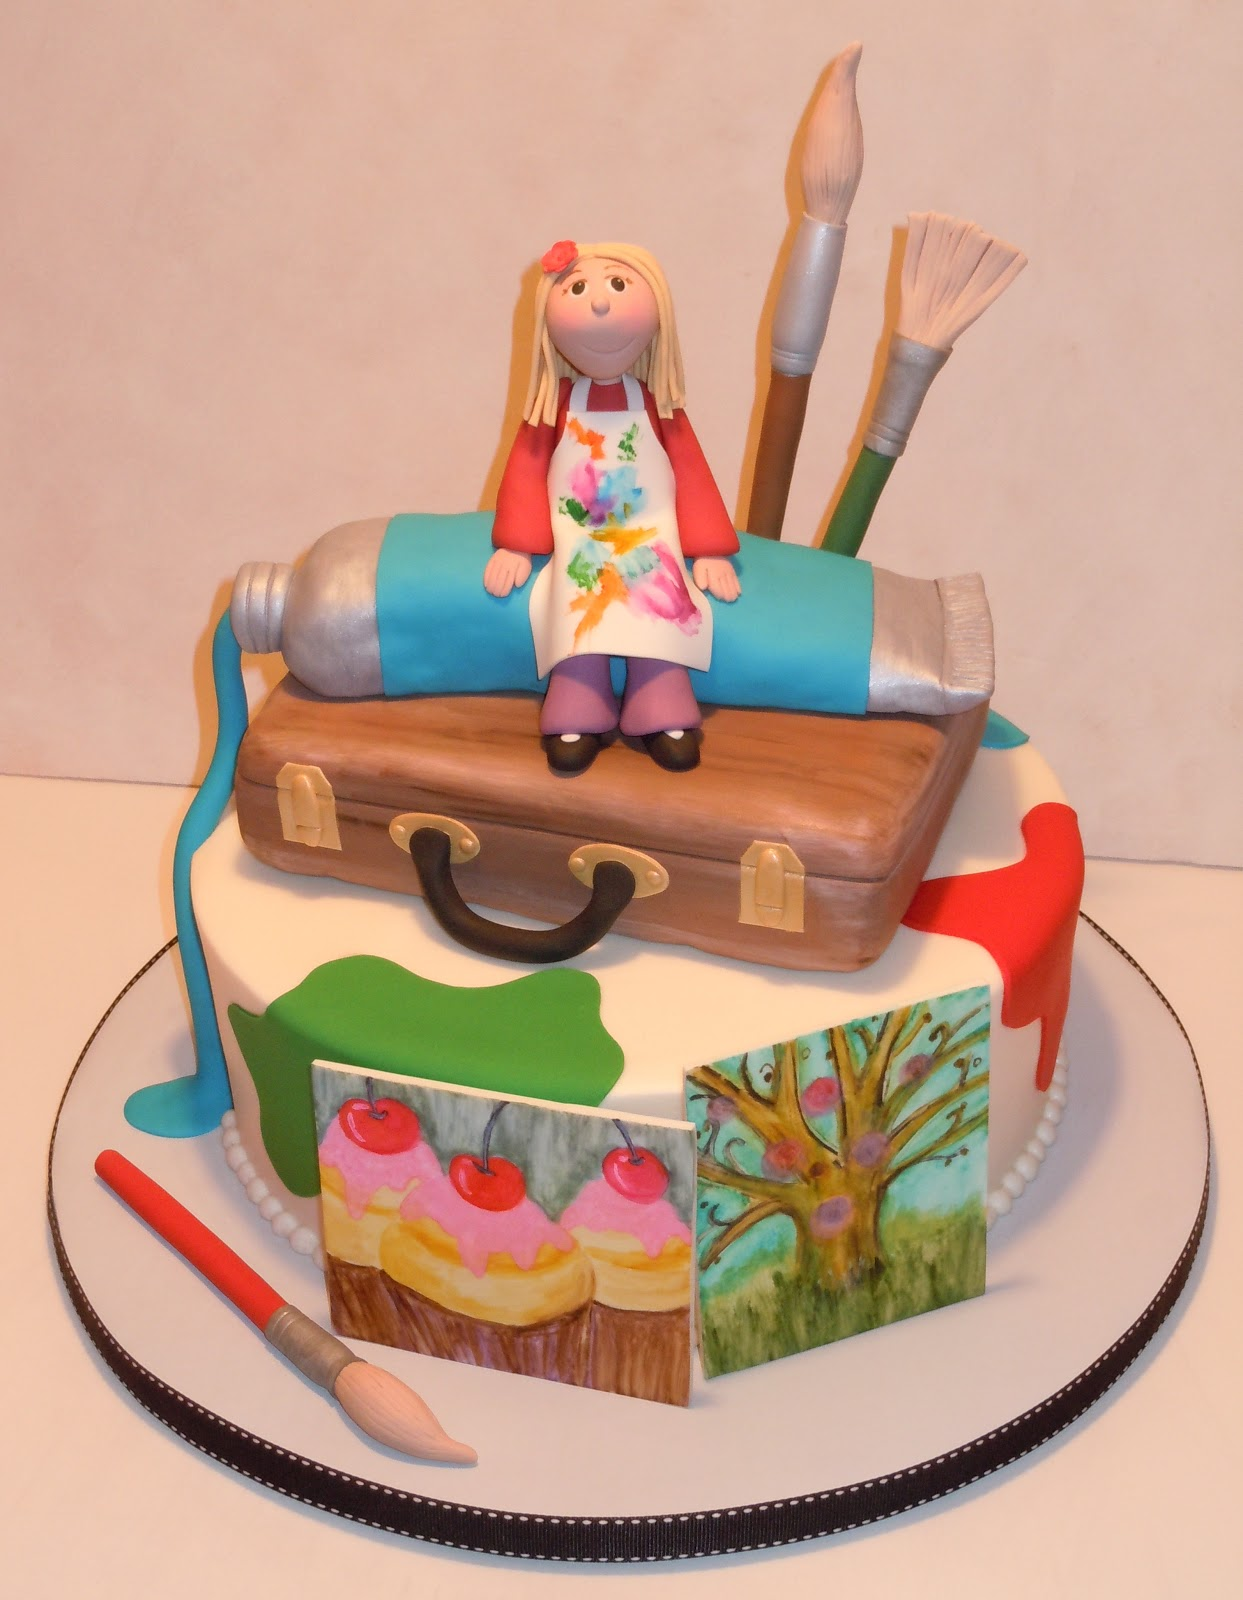 Artist Cake Design : Kids Birthday cakes on Pinterest Rainbow Cakes, Artist ...